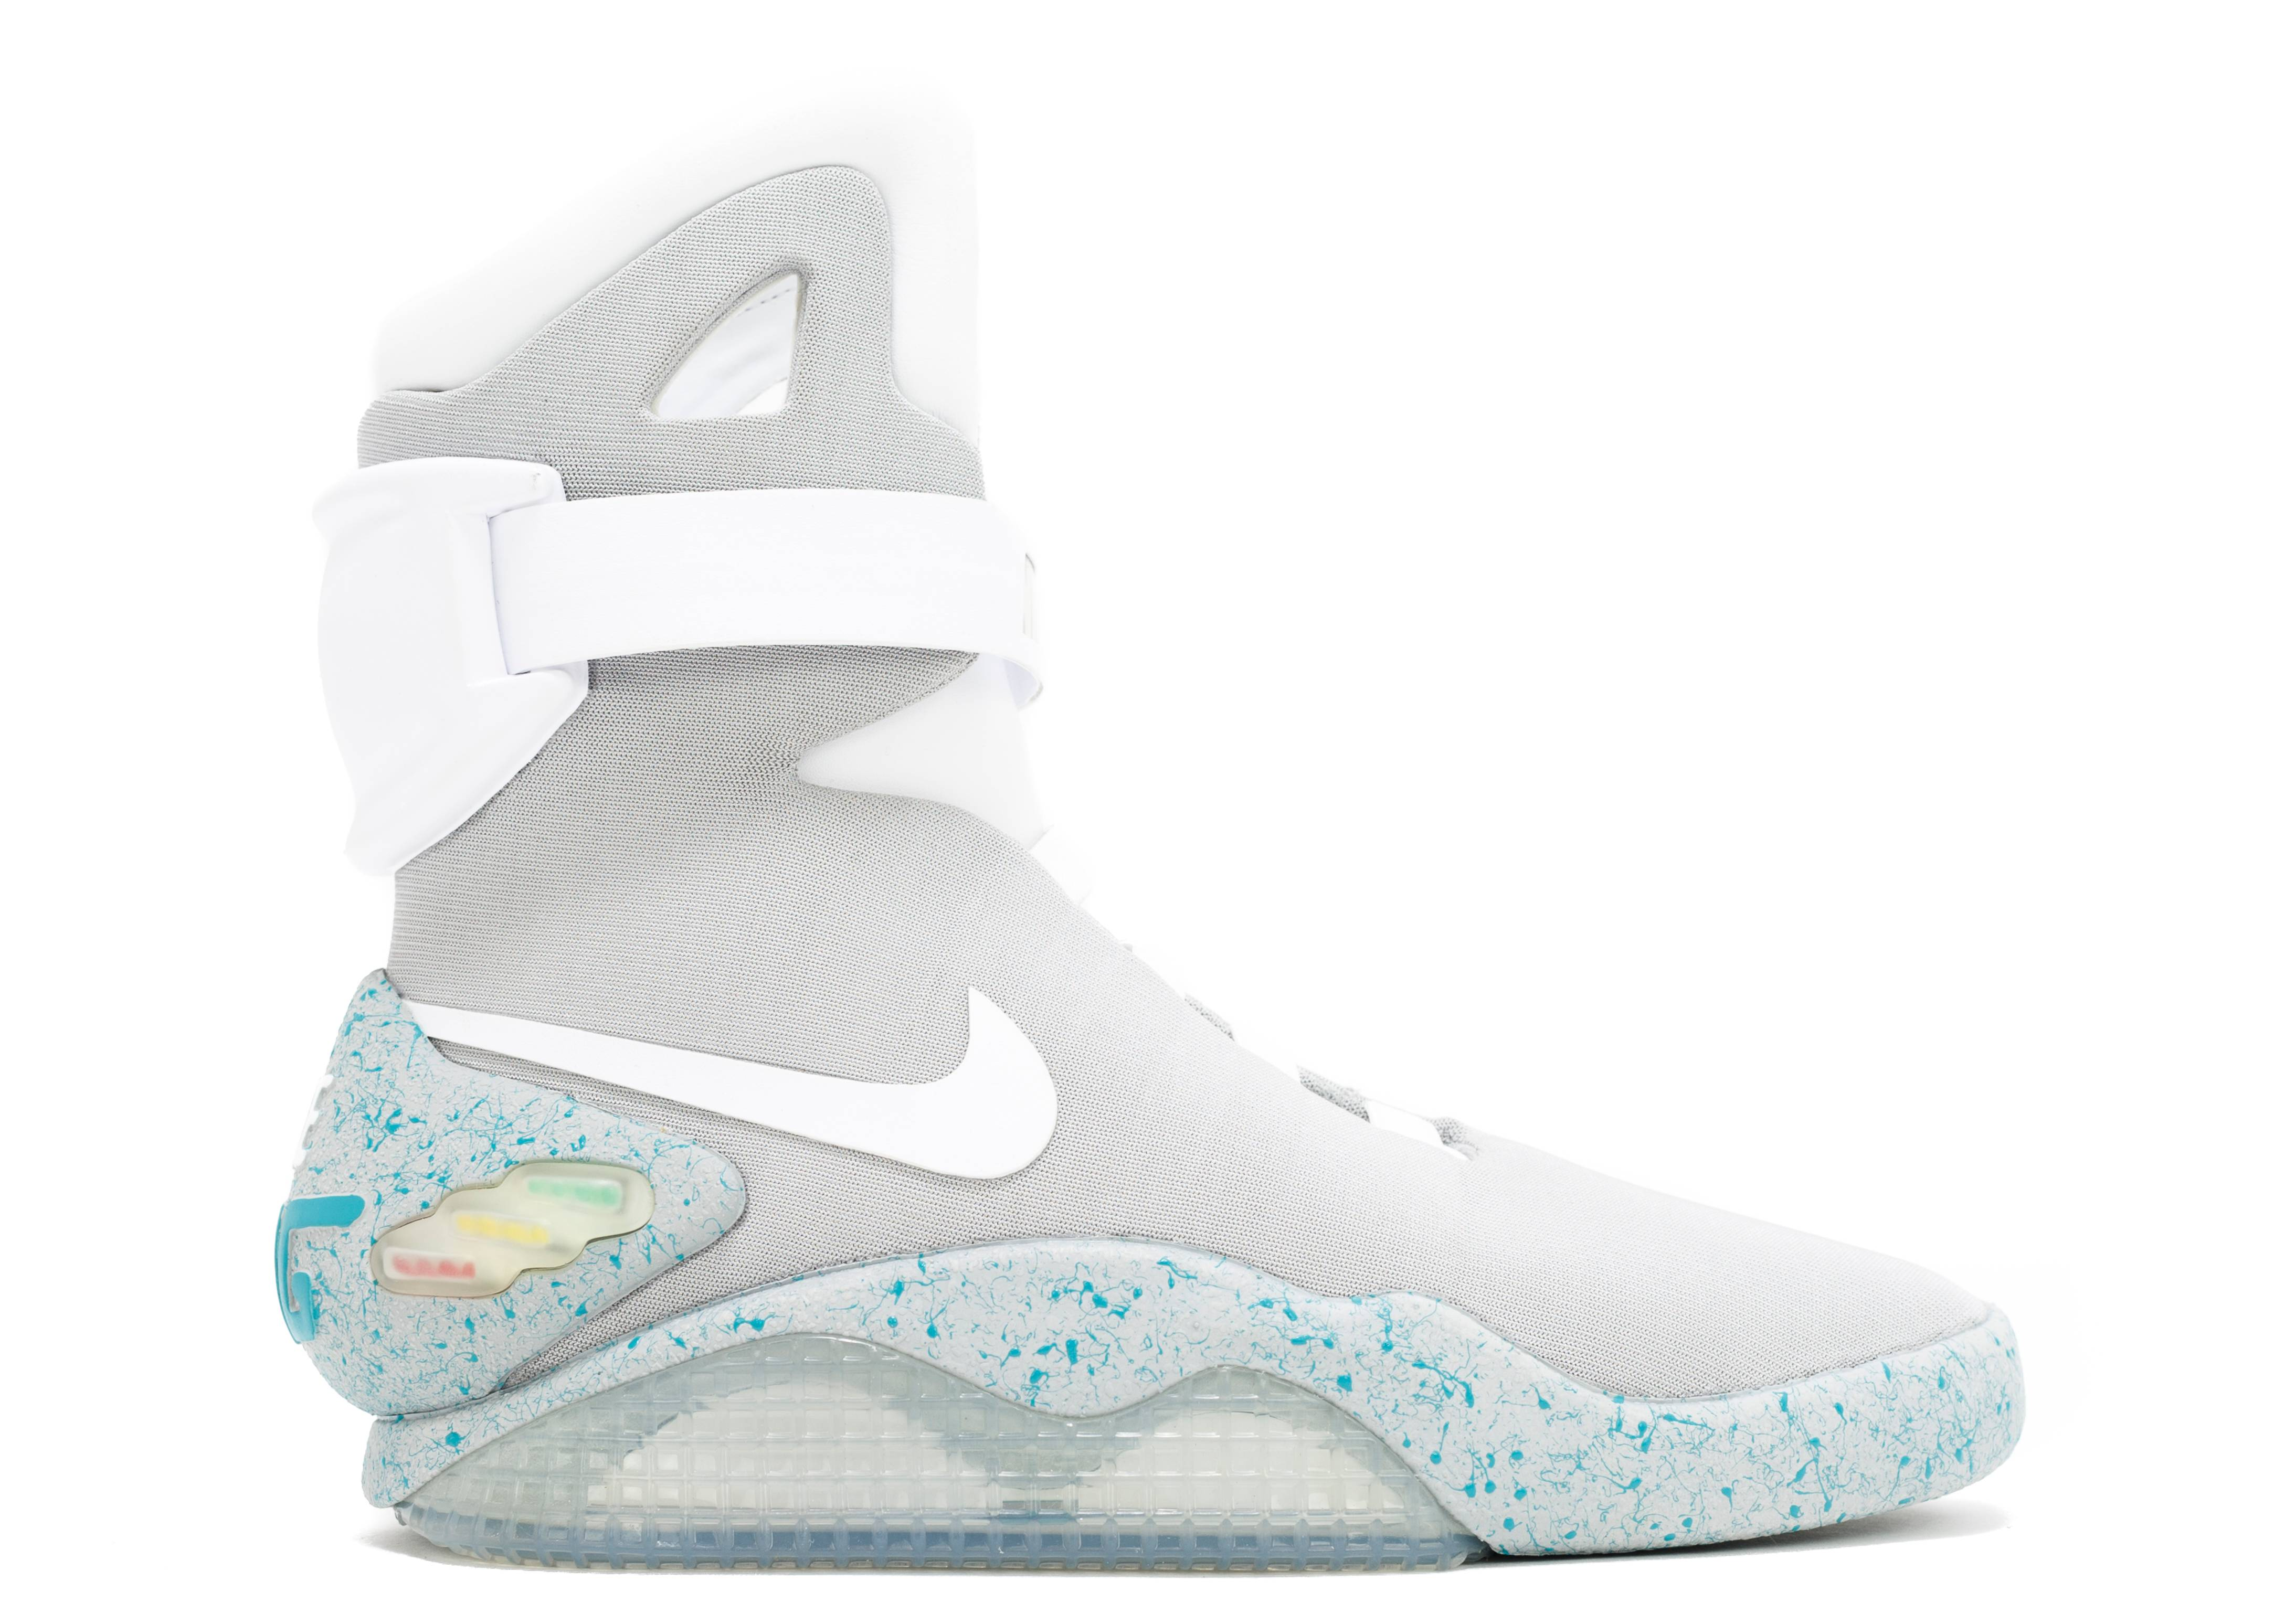 Padre sala Persona especial  Nike Mag 'Back To The Future' - Nike - 417744 001 - jetstream/white-pl blue  | Flight Club